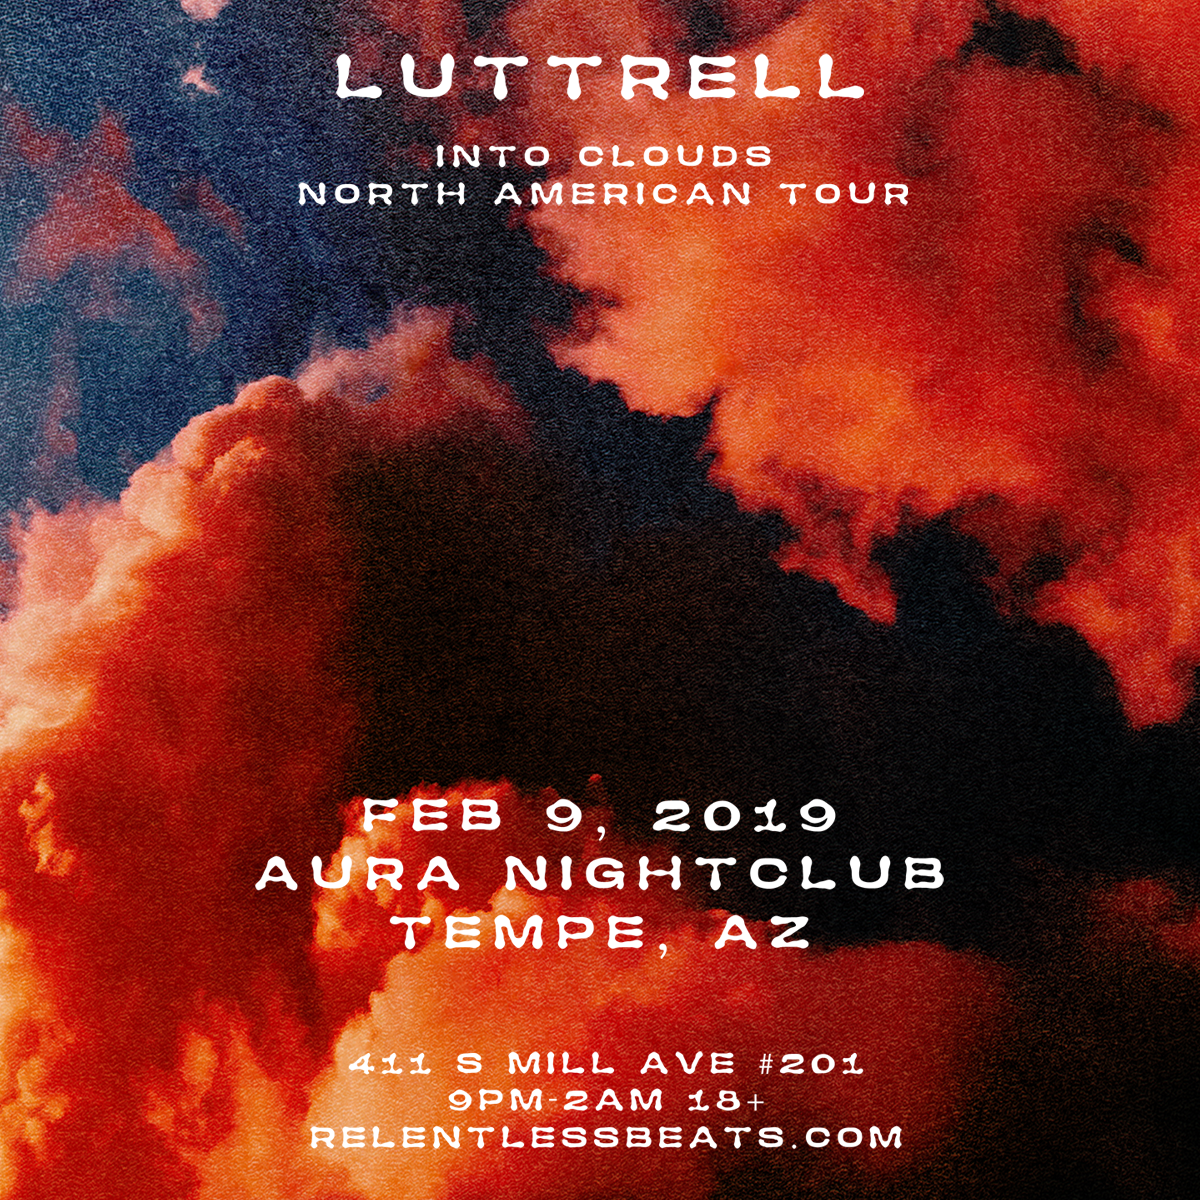 Flyer for Luttrell